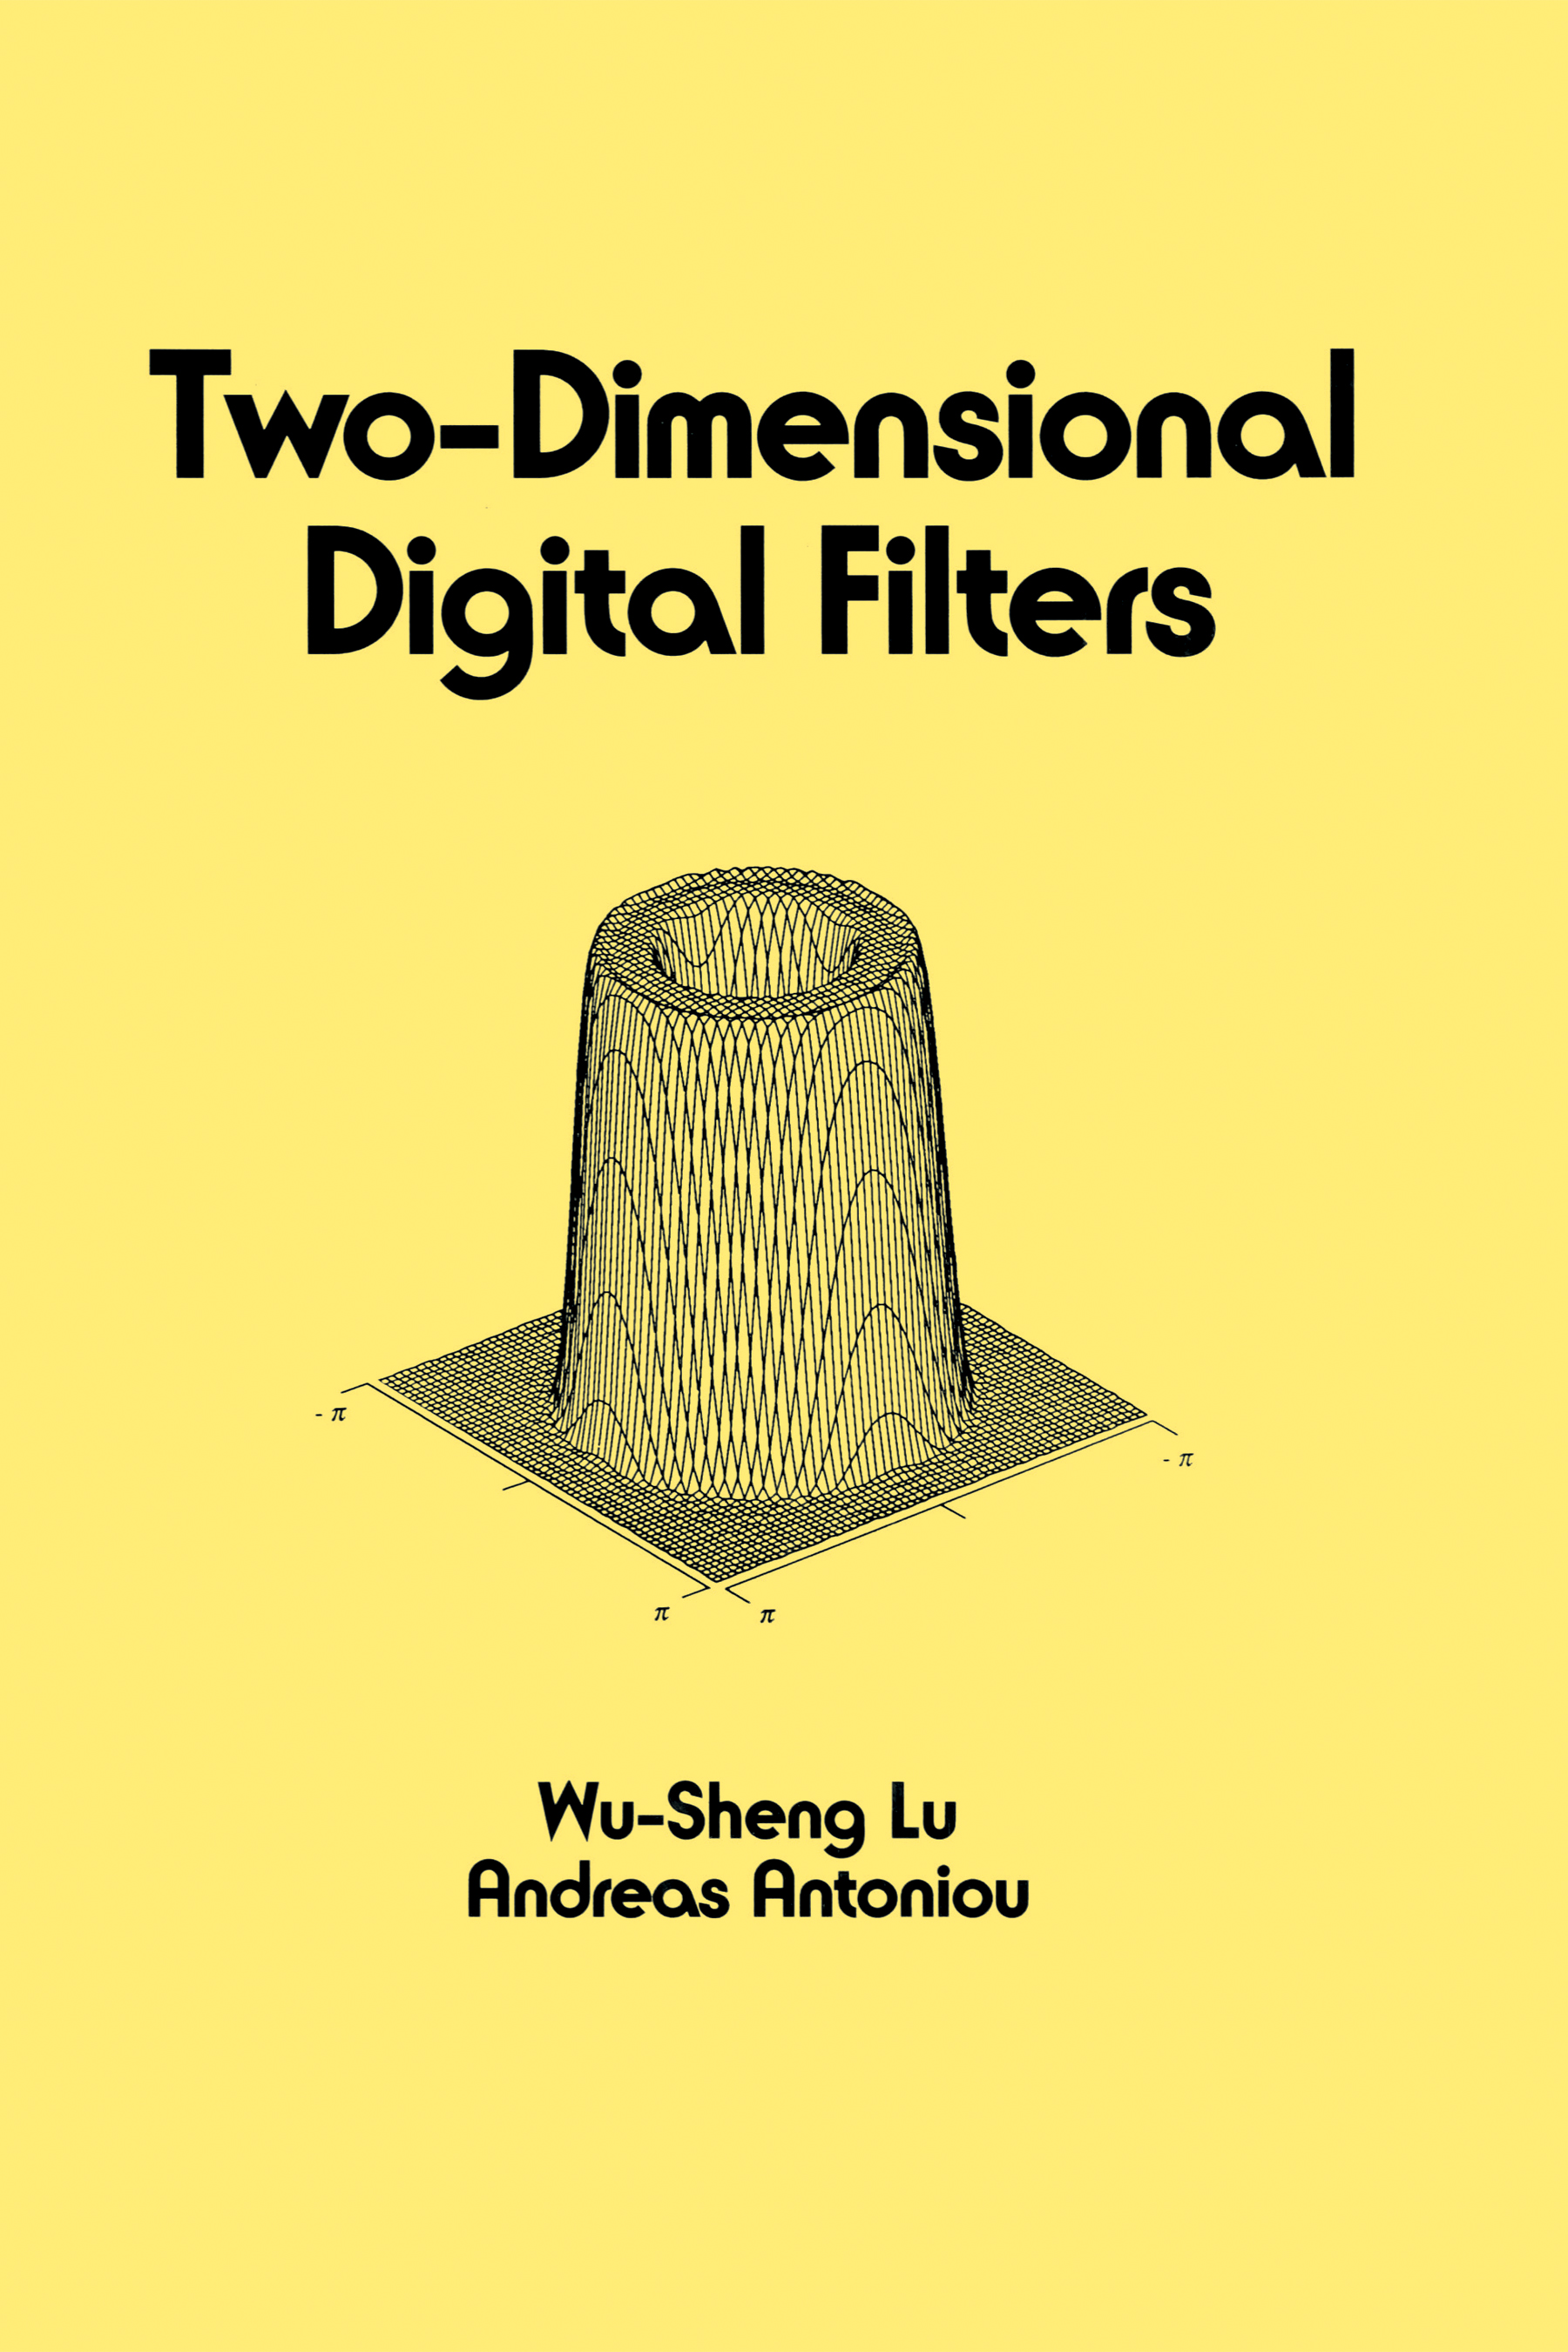 Two-Dimensional Digital Filters